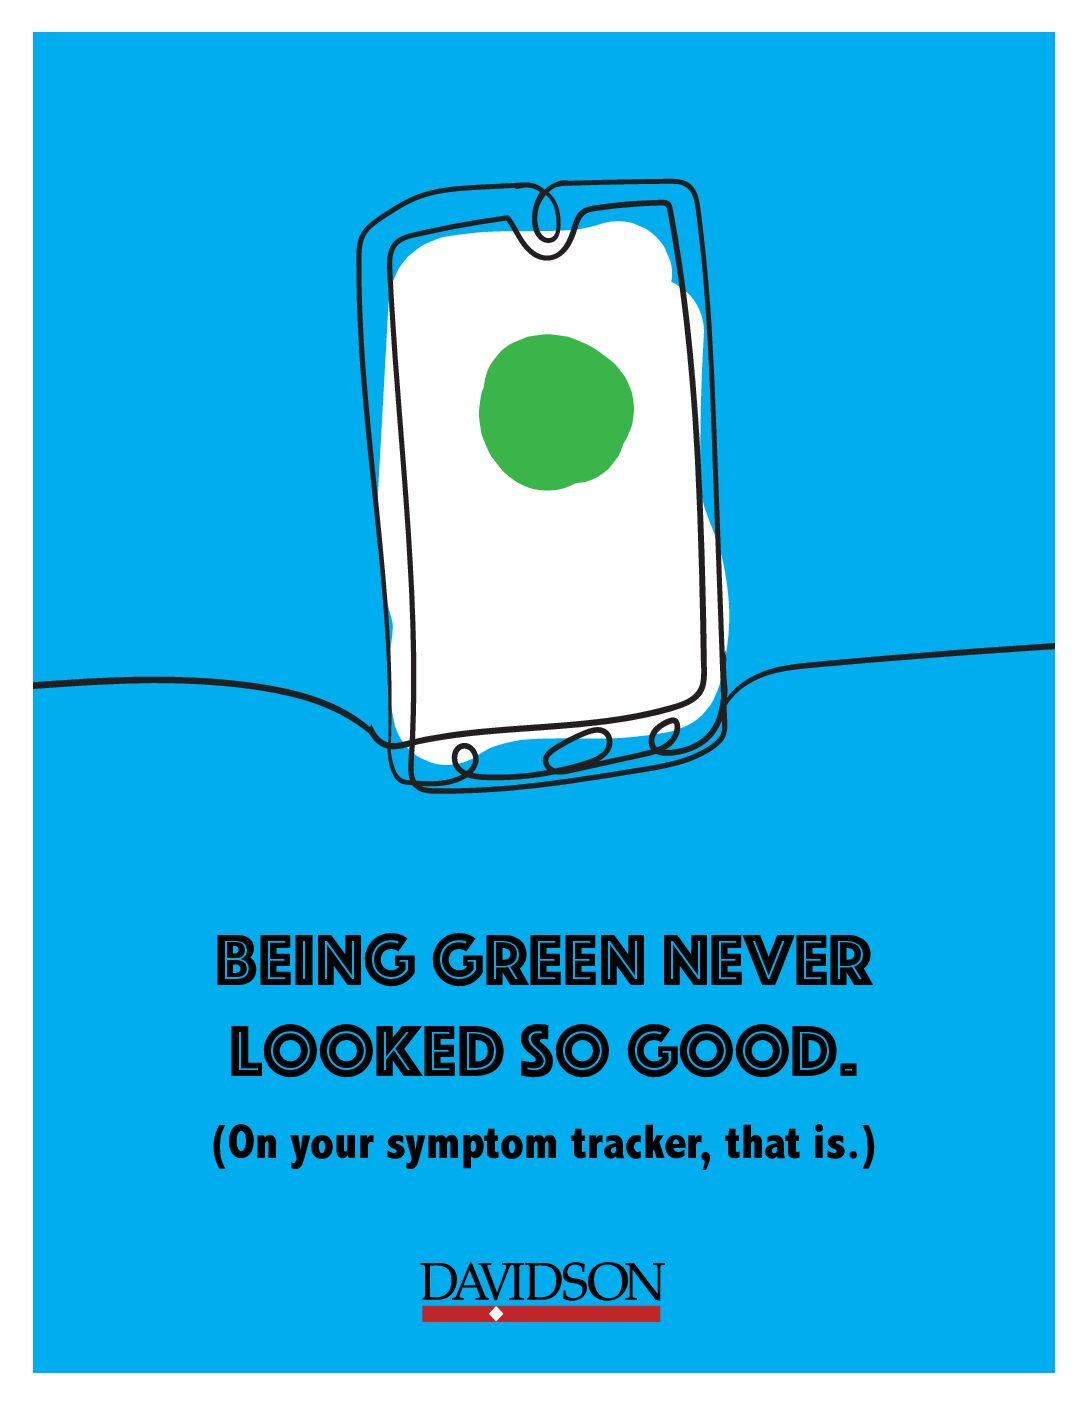 """""""Being green never looked so good. On your symptom tracker, that is"""" with sketch of phone displaying green circle."""